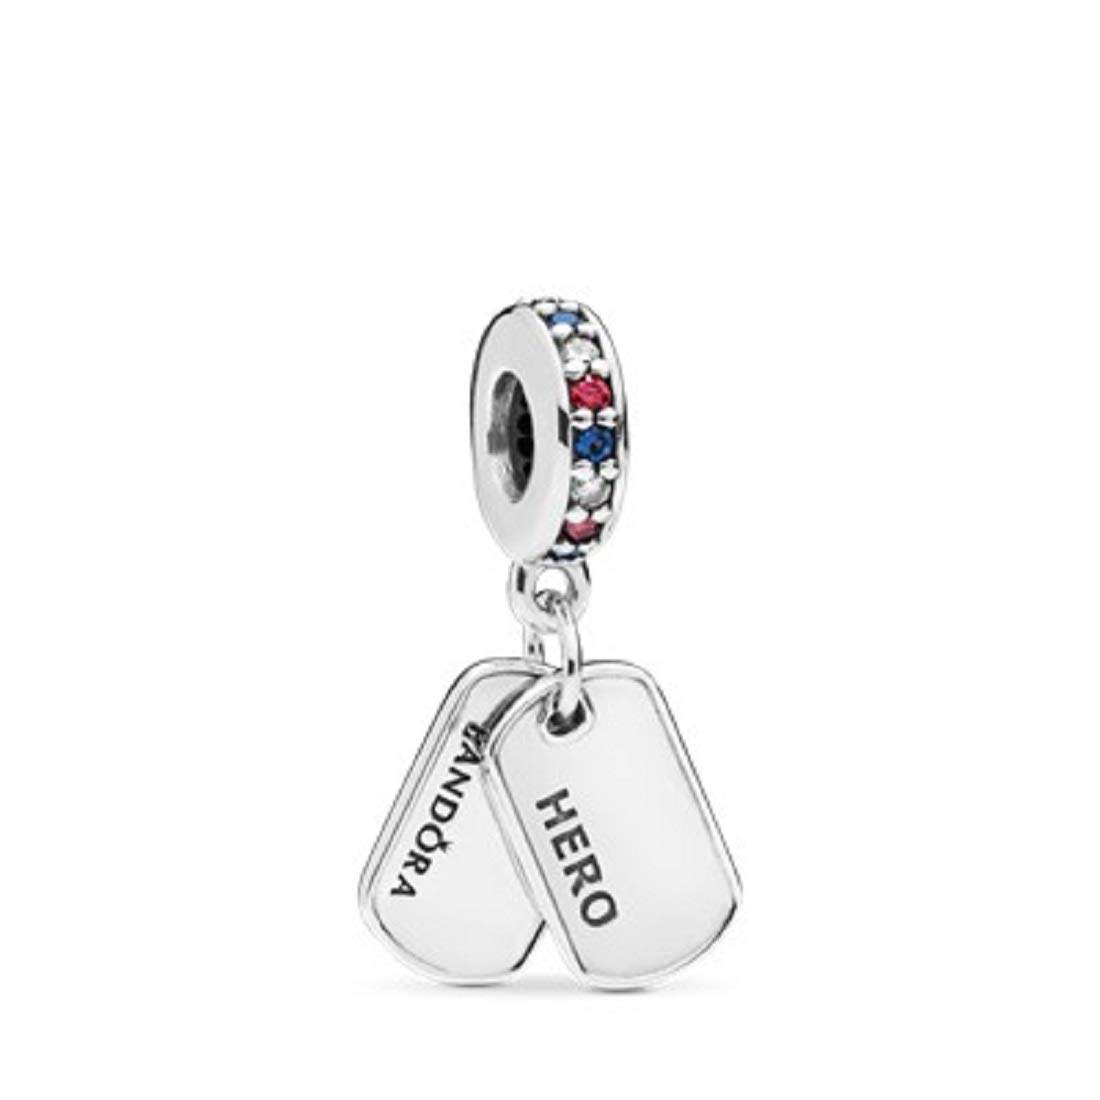 Hero Dog Tag Dangle Charm 797659CZRMX ~Multi-Colored CZ and Blue Crystals